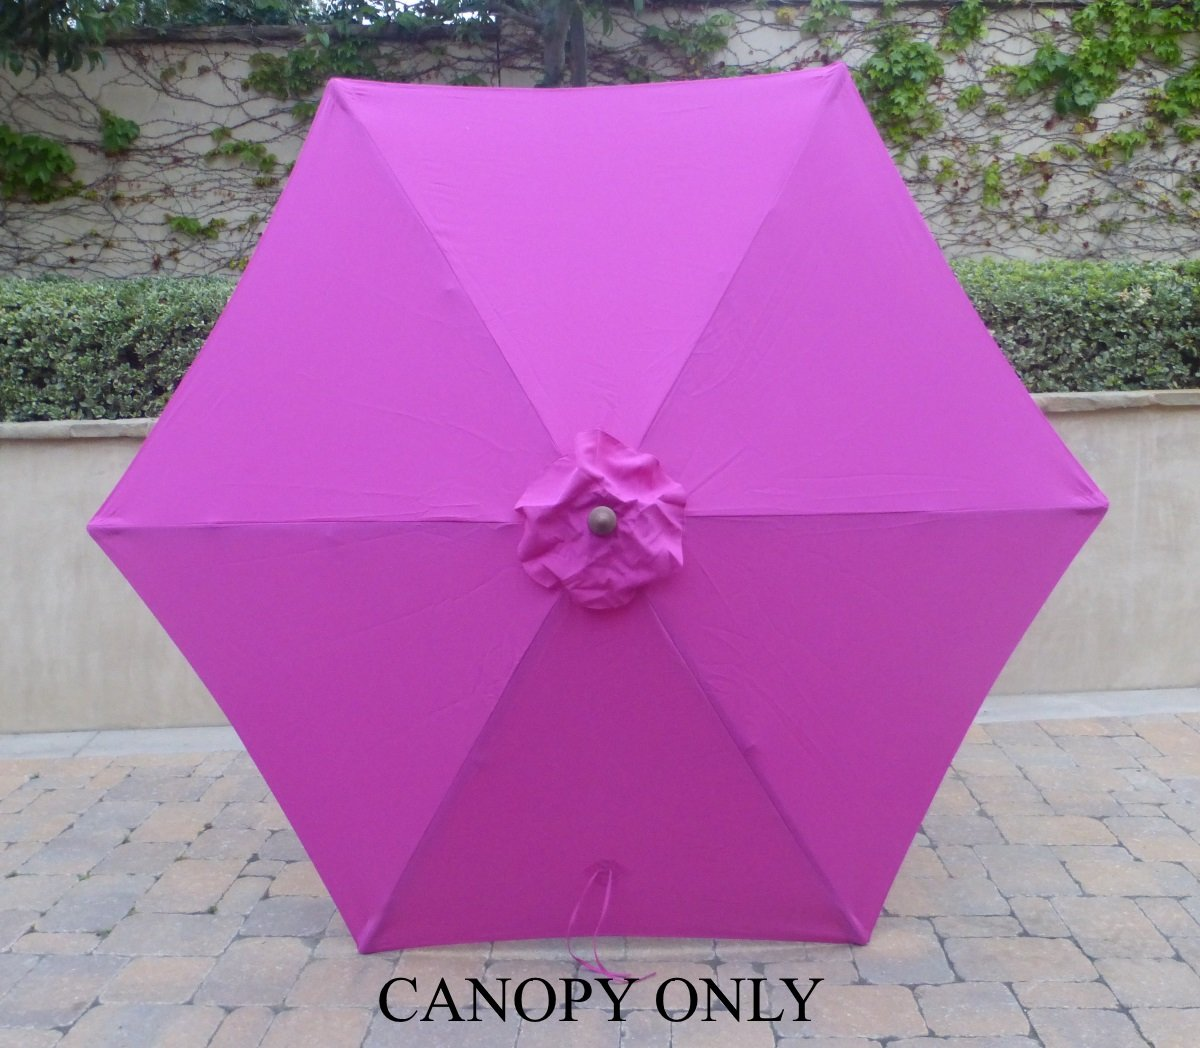 Amazon.com : 9ft Umbrella Replacement Canopy 6 Ribs In Fuchsia (HOT PINK  Canopy Only) : Garden U0026 Outdoor